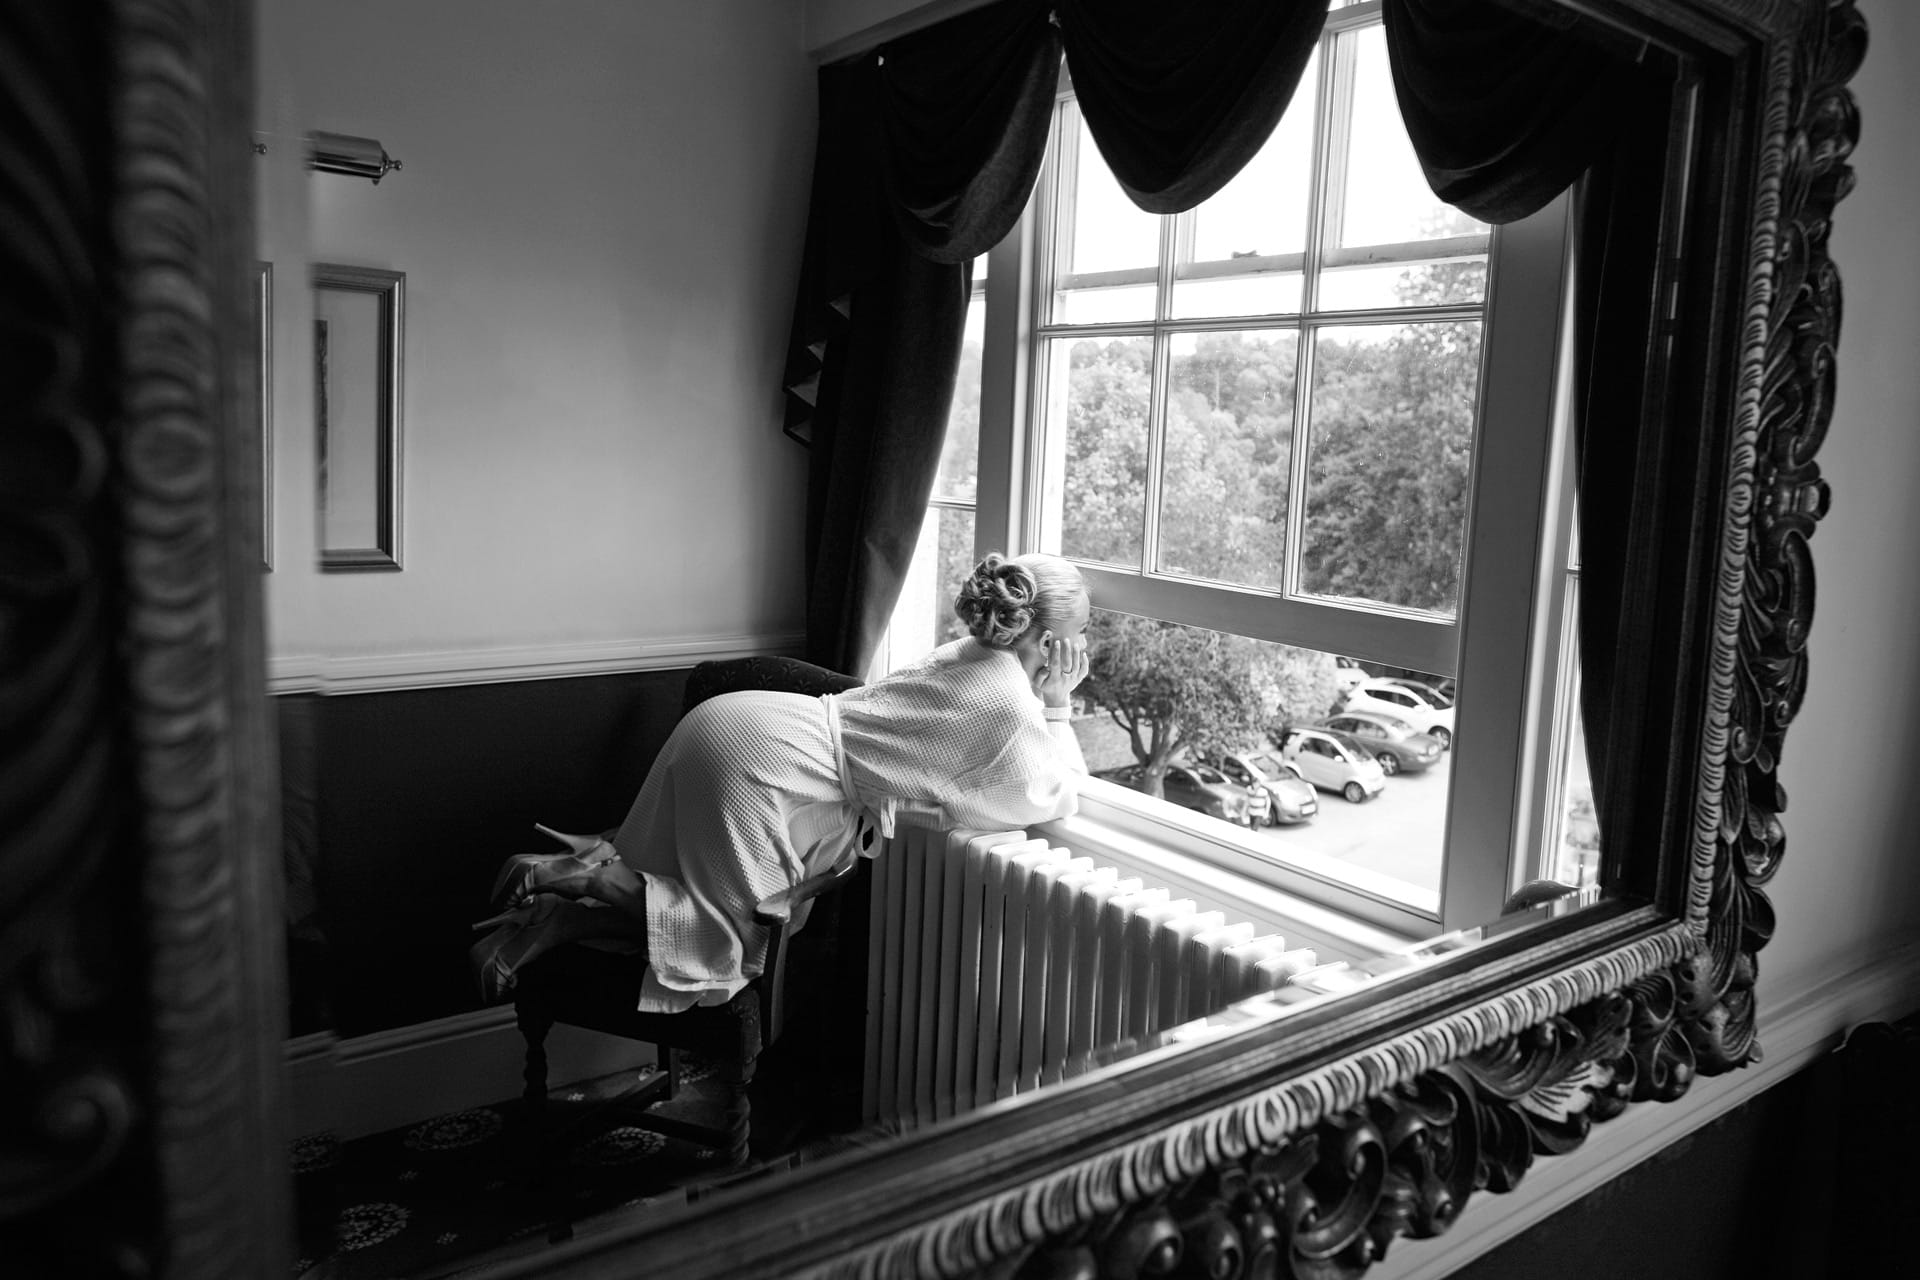 bride-kneeling-on-chair-reflection